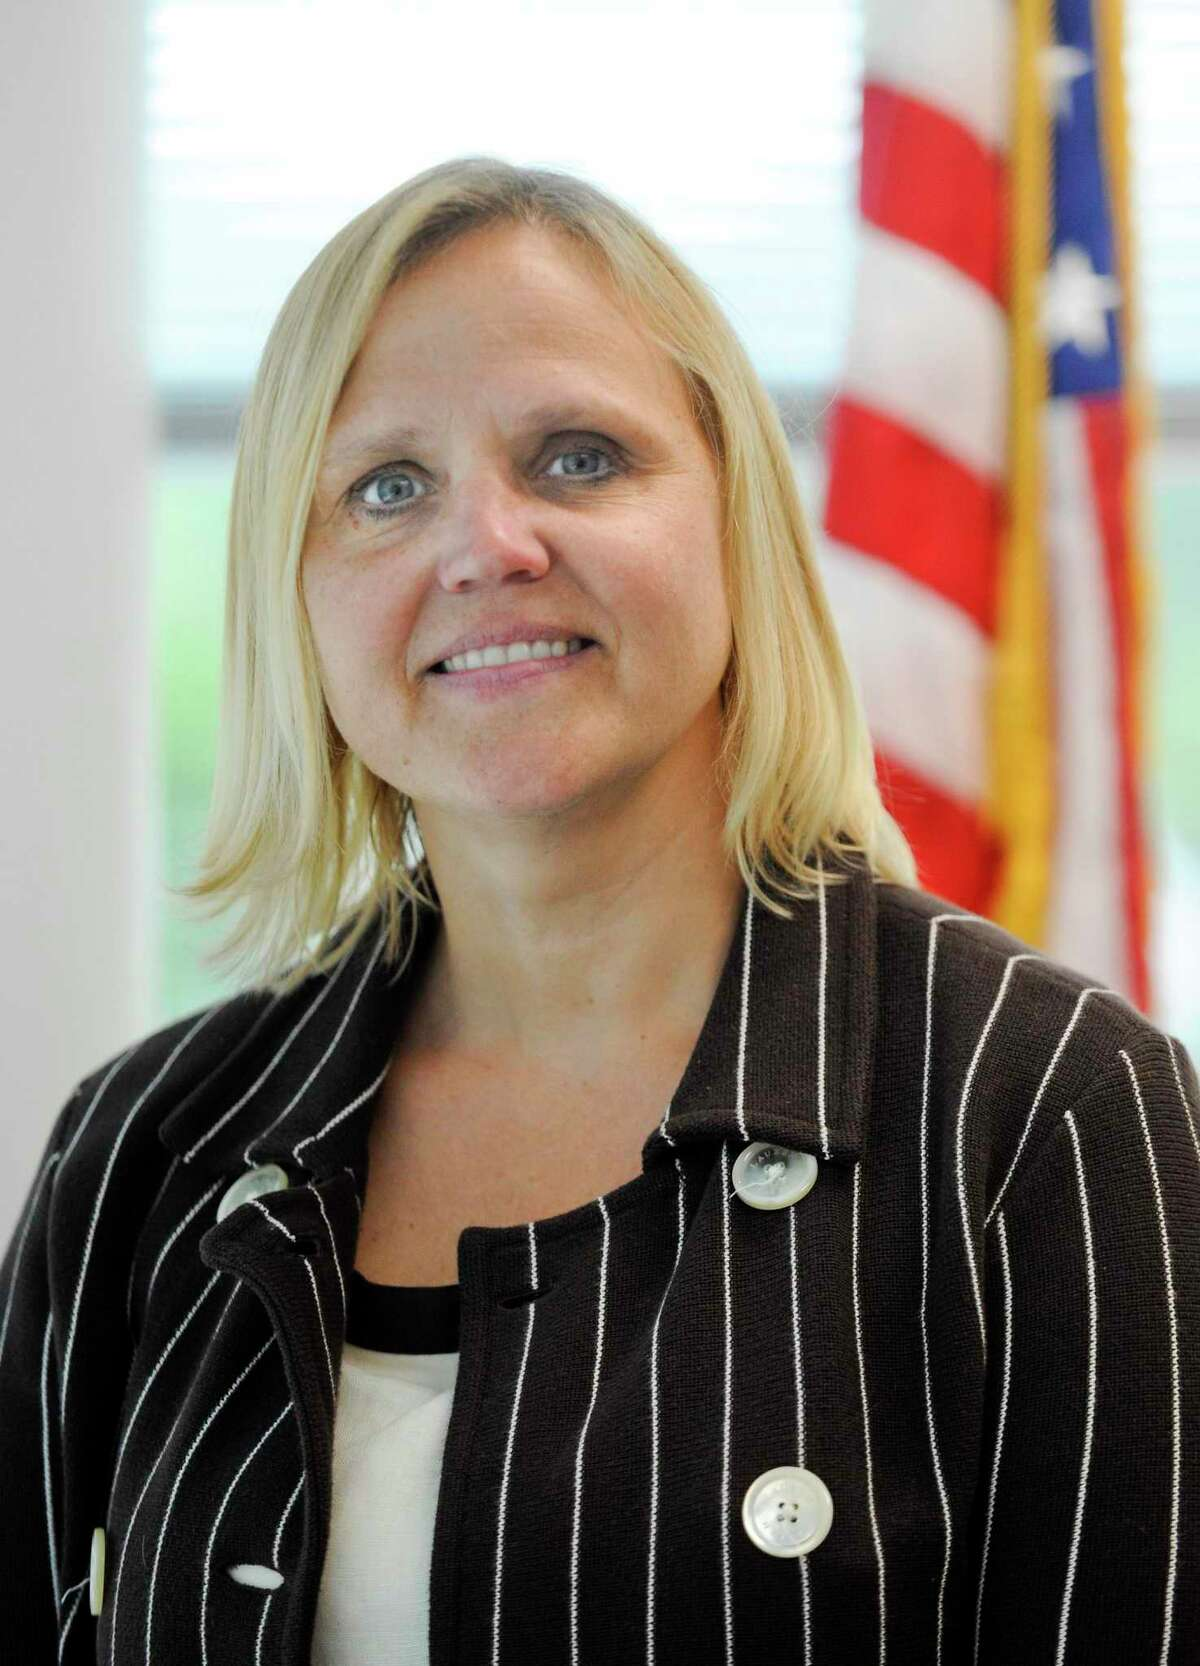 Toquam Principal Amy Beldotti is photograph on June 18, 2019 in Stamford, Connecticut. The Stamford Board of Education is expected to name Beldotti as the new associate superintendent for teaching and learning.